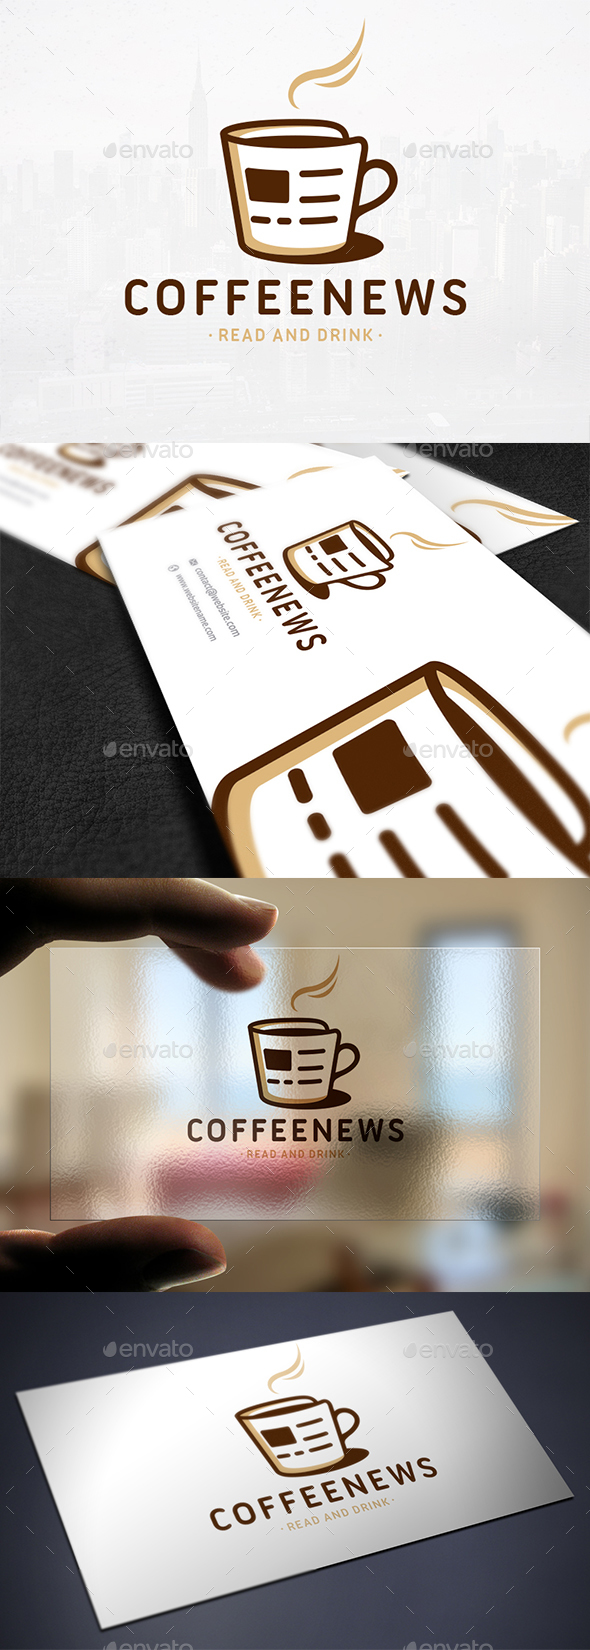 Coffee & News Logo Template - Objects Logo Templates